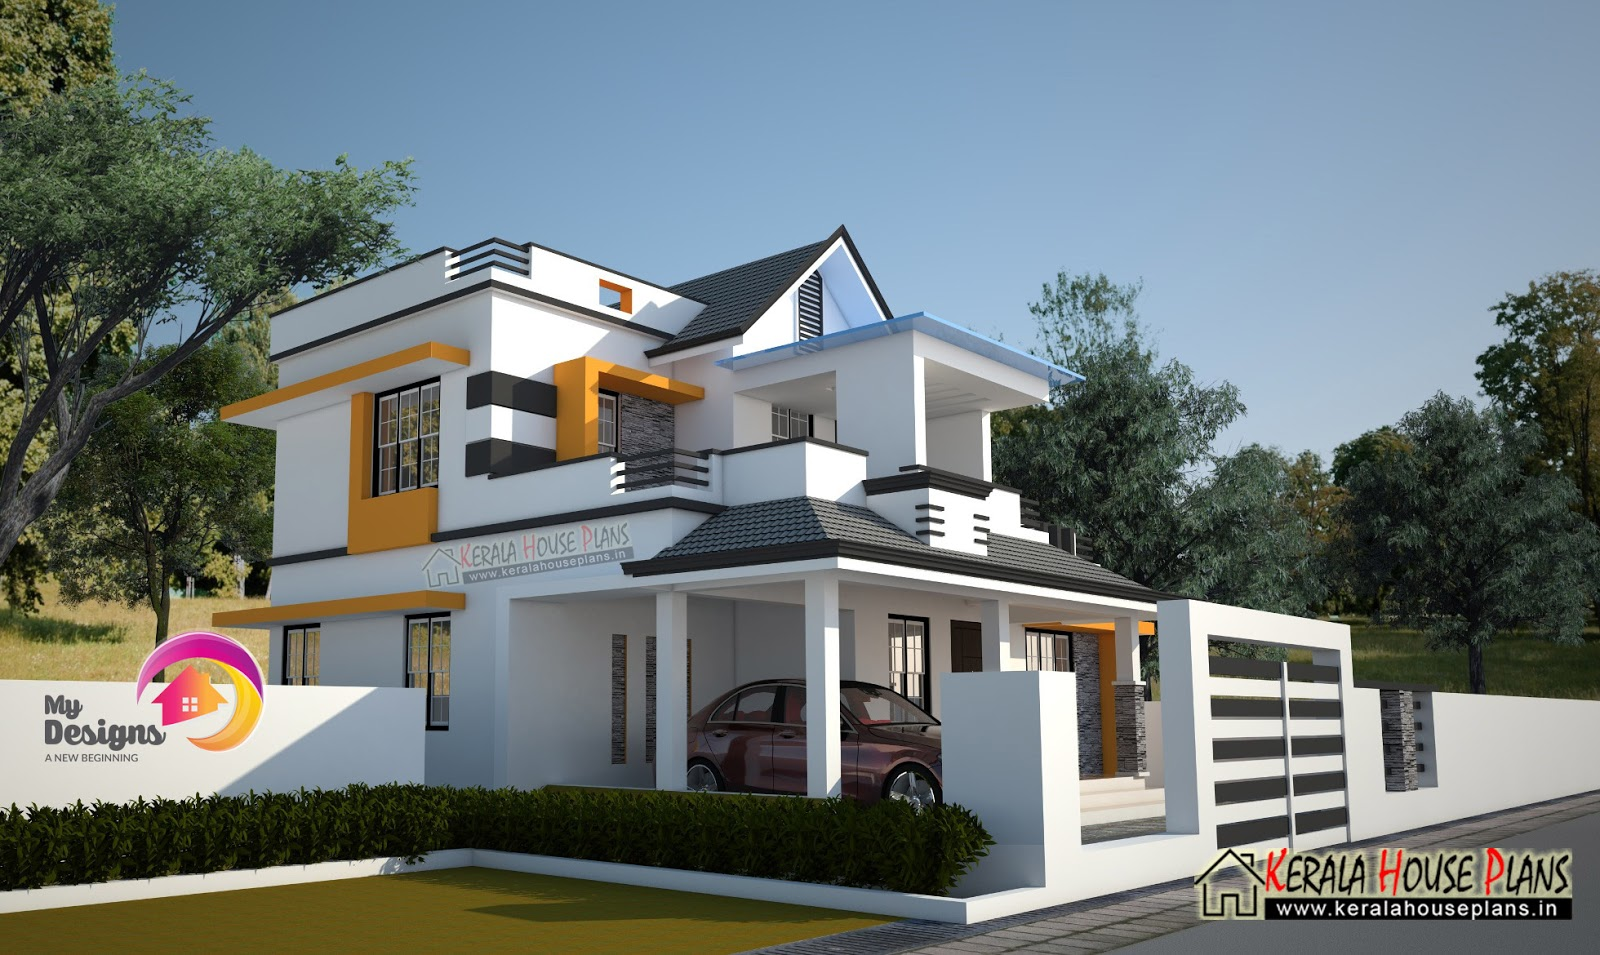 3 bedroom 2 story house design kerala house plans for House plans with photos in kerala style